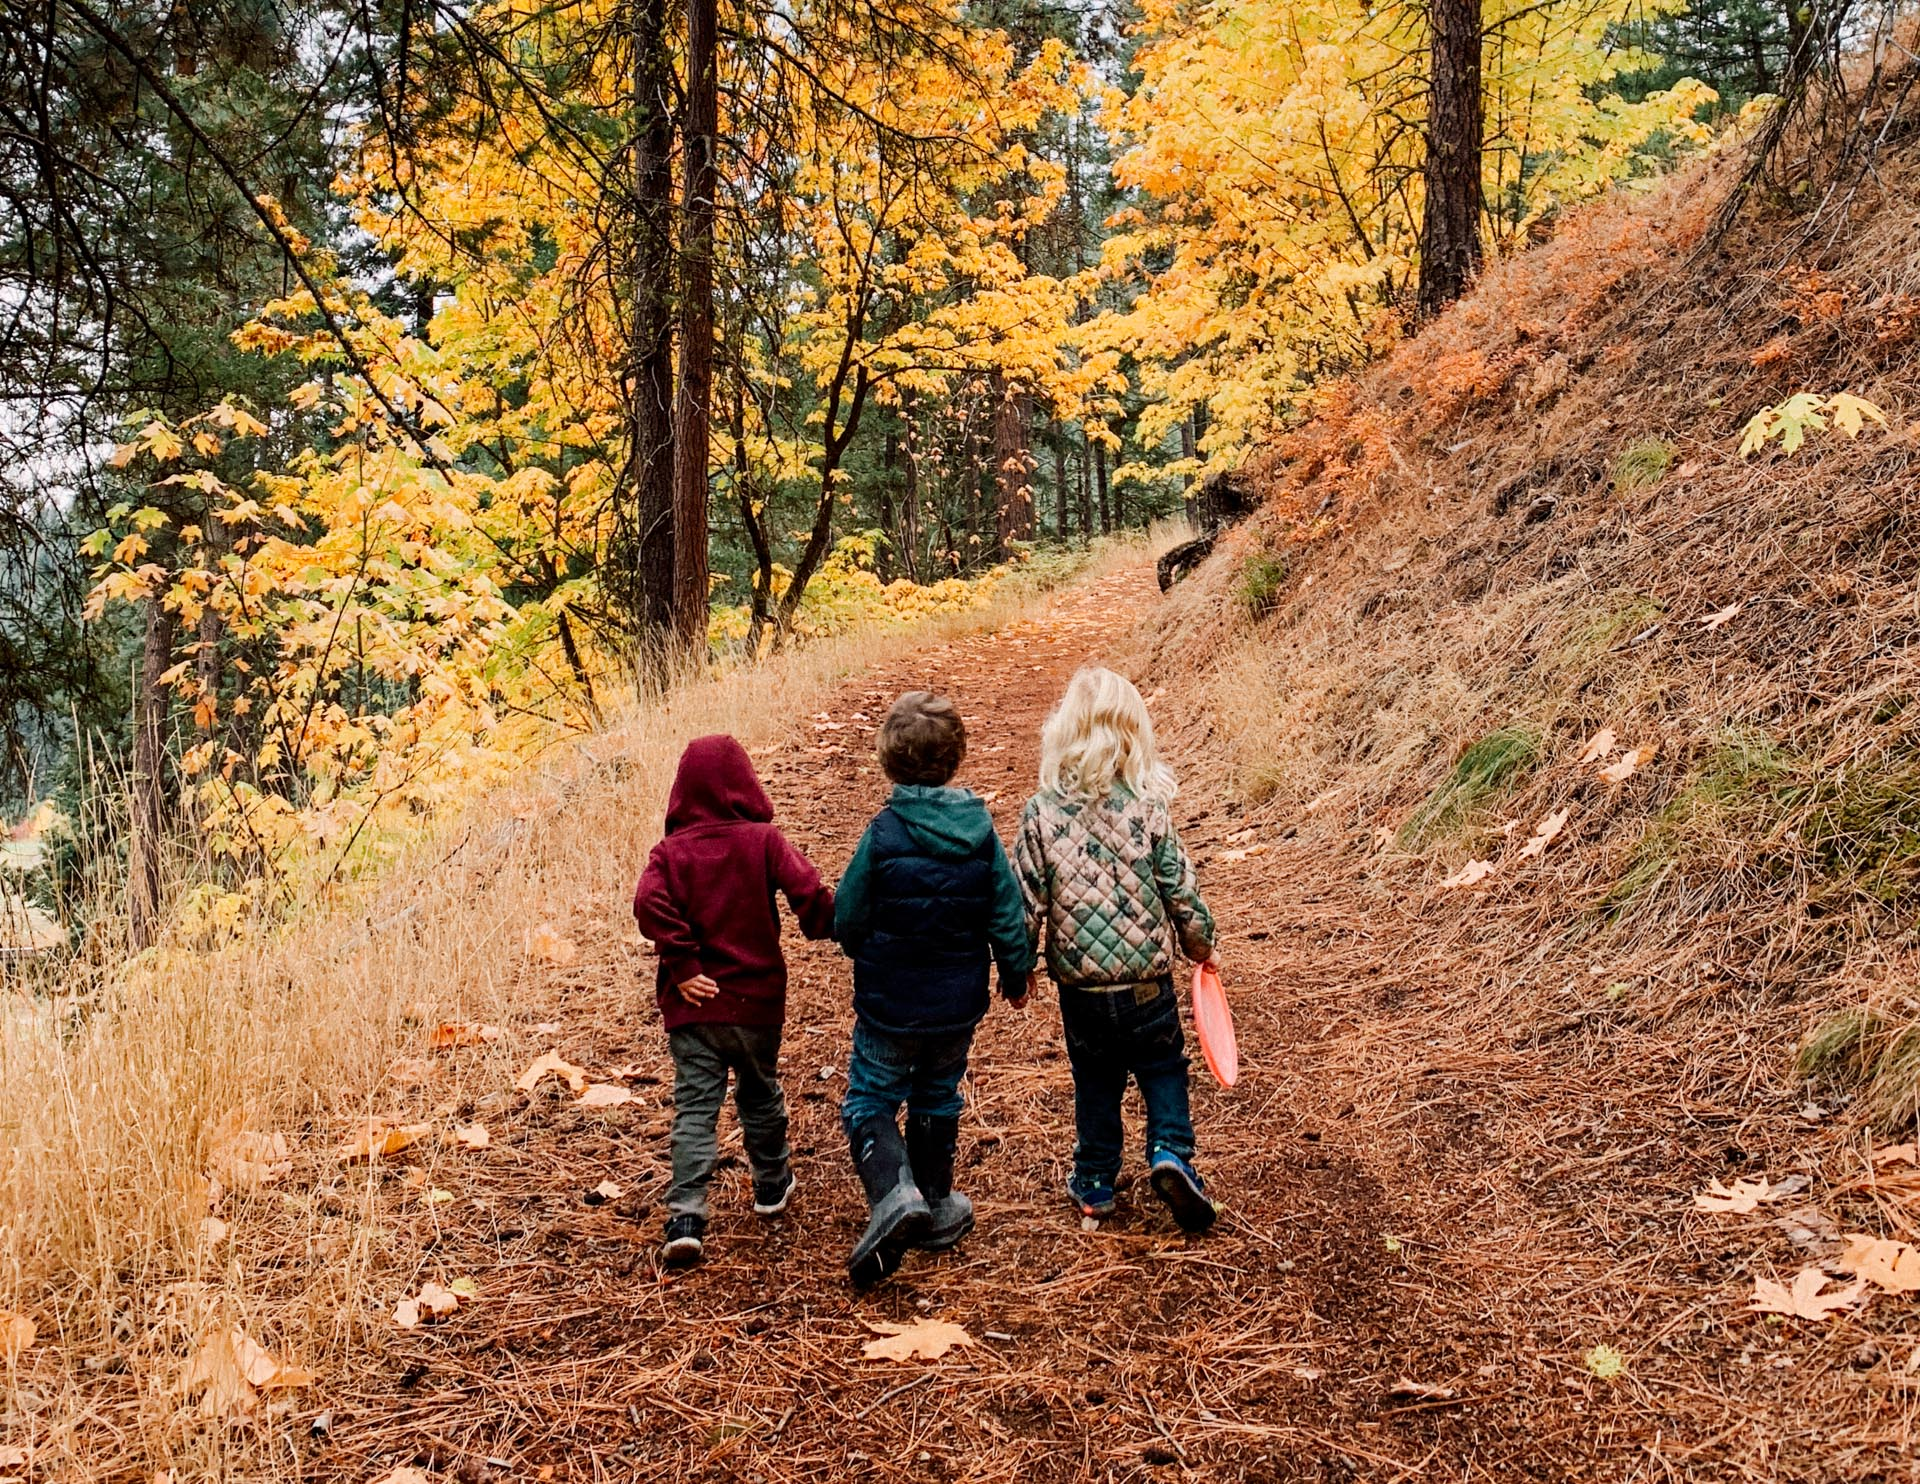 Full Day Nature Immersion - Our full day program supports working families. With long days for young students we flex our indoor and outdoor time depending on the season, the day and the feel of the students. Every day includes a rest time to replenish their bodies.